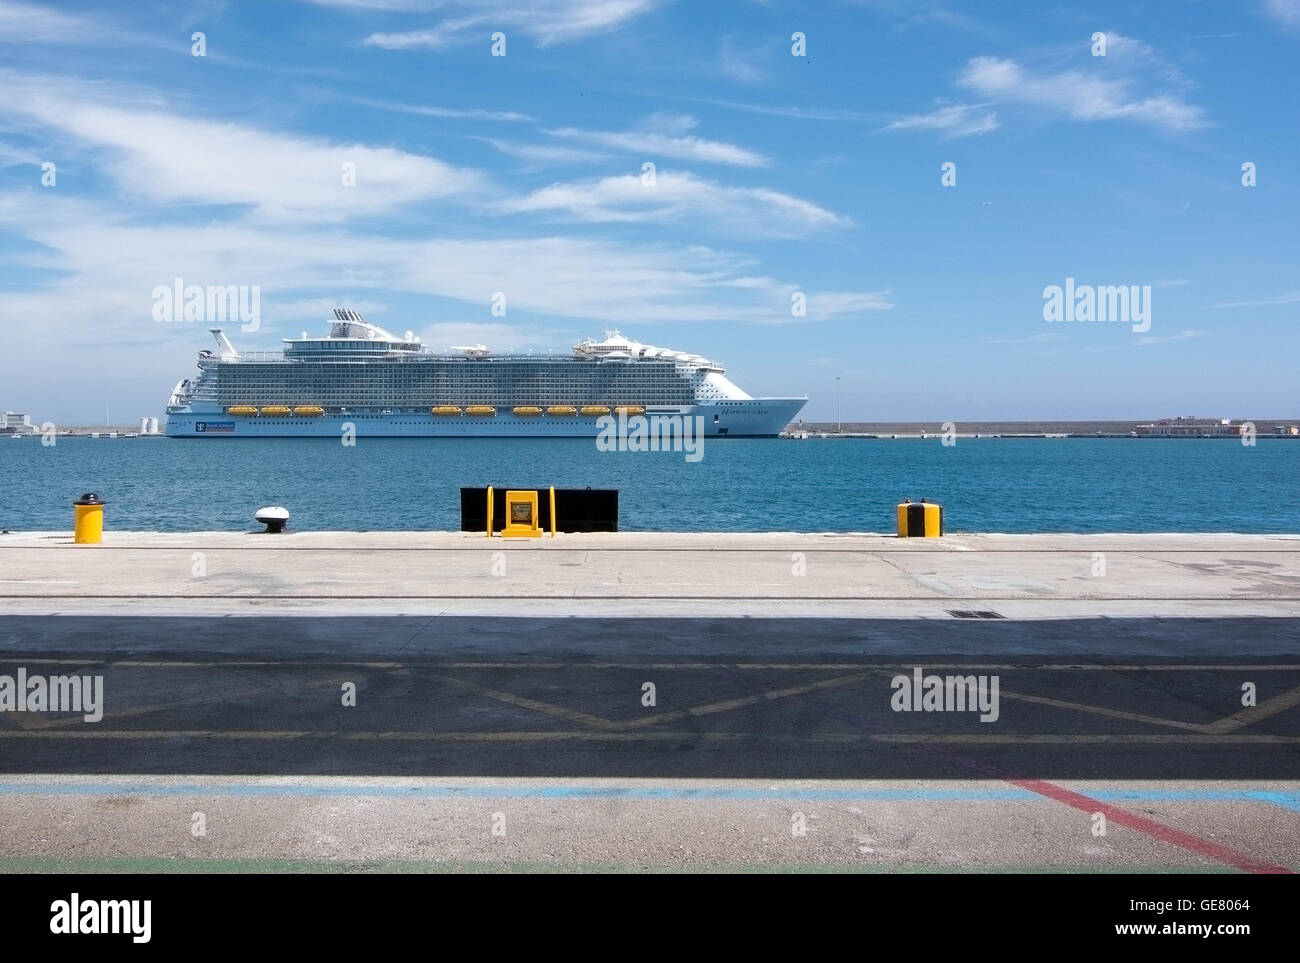 Harmony of the Seas, the largest cruise ship in the world moored in